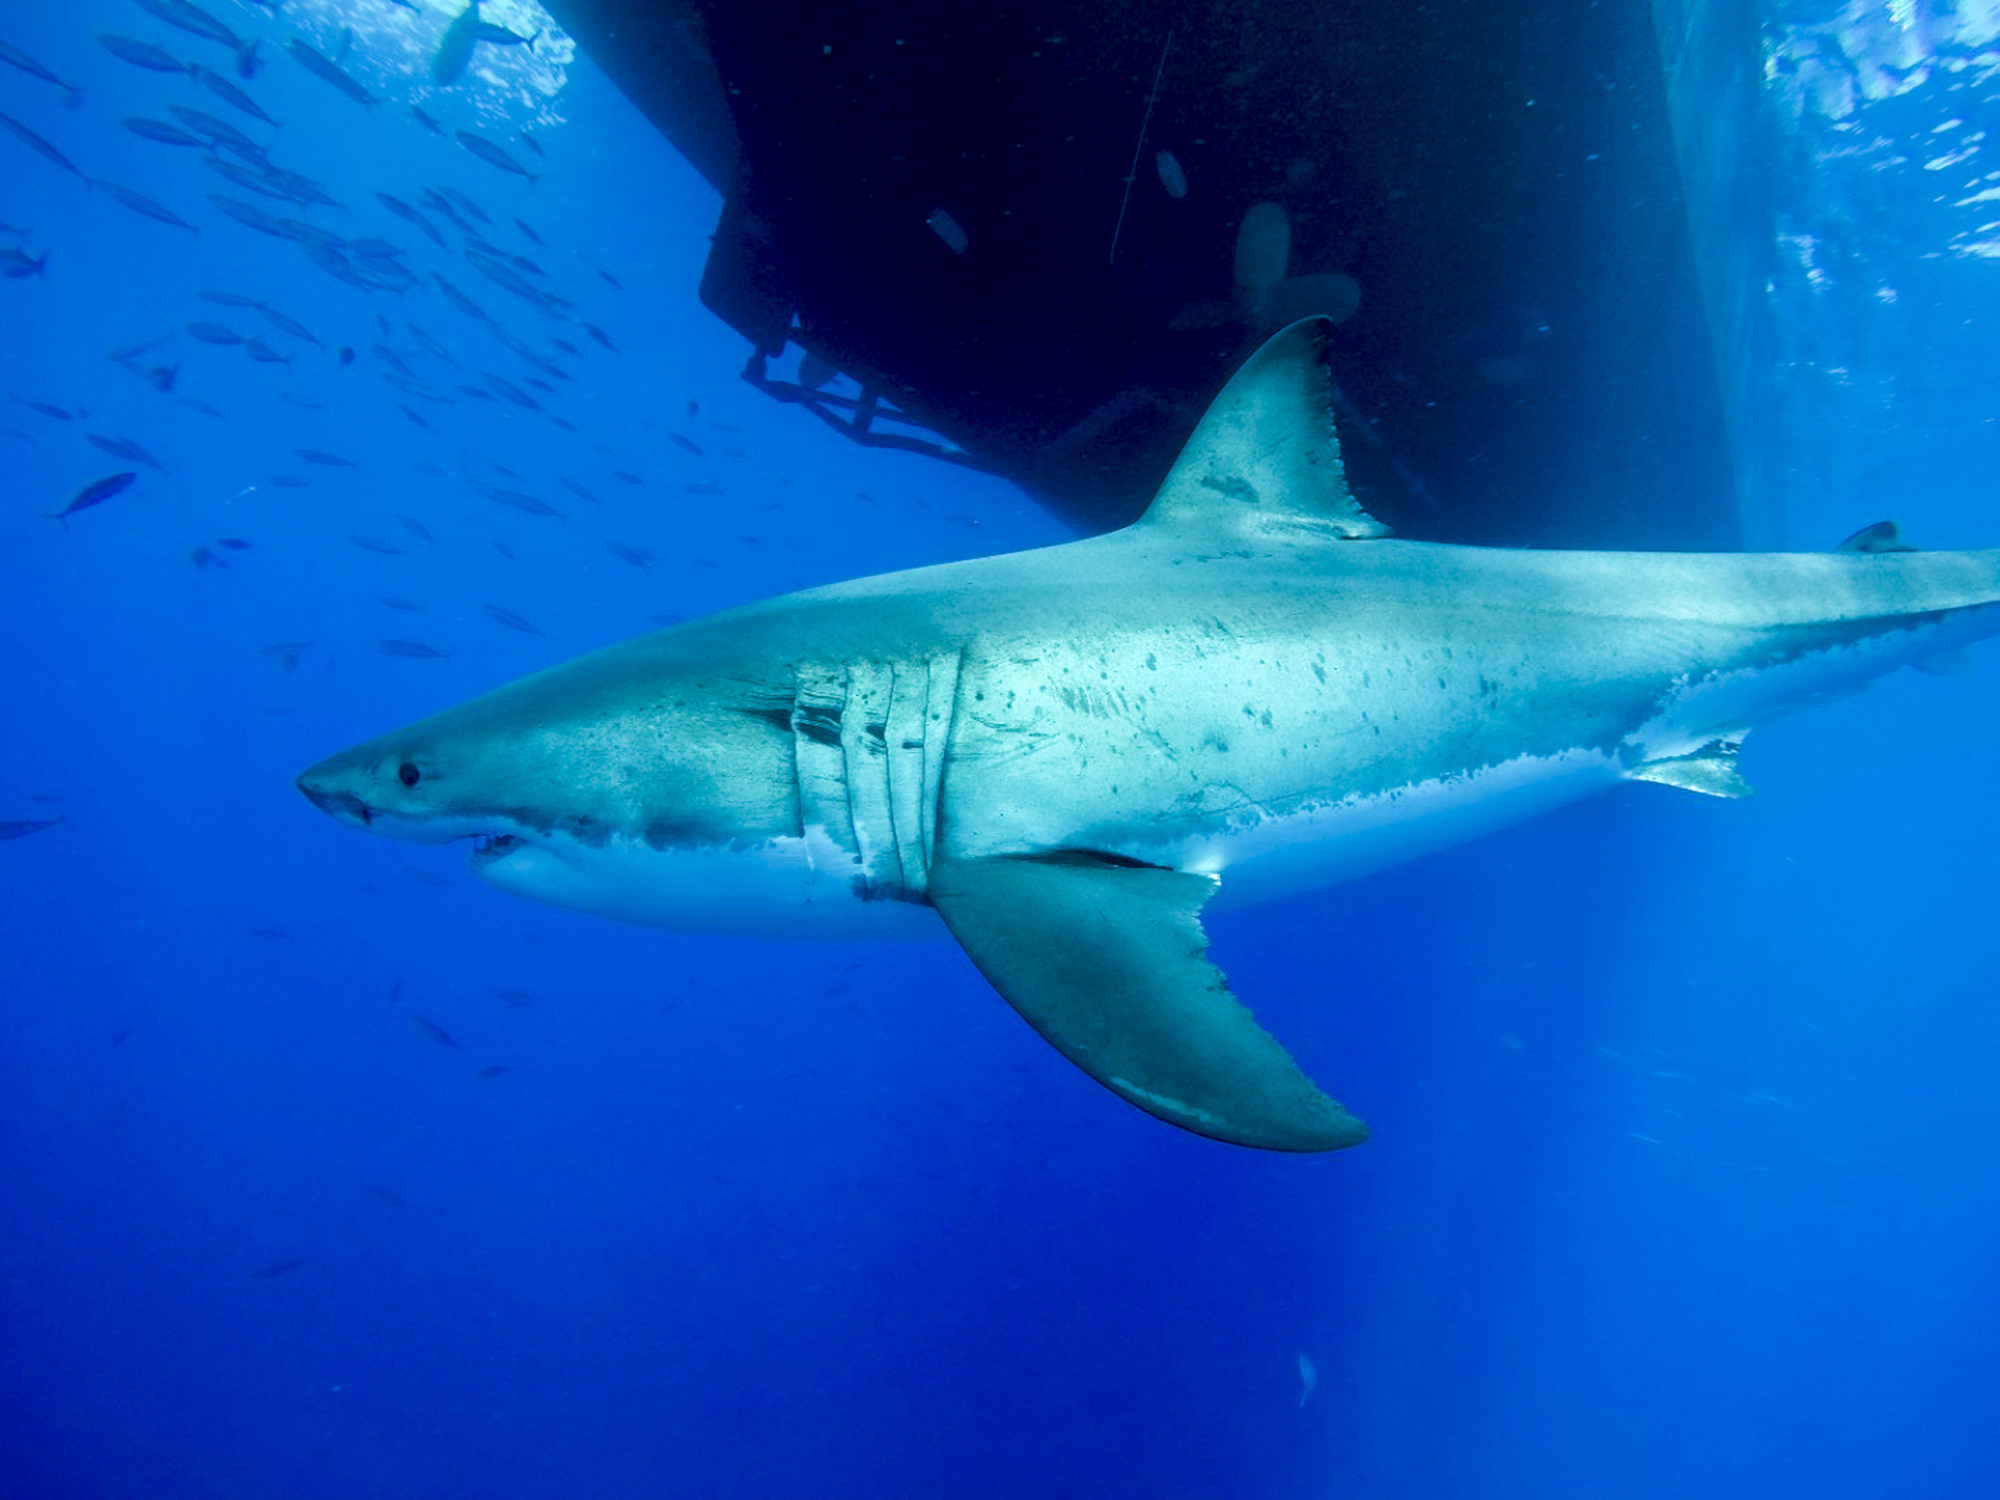 A shark swims under a hull